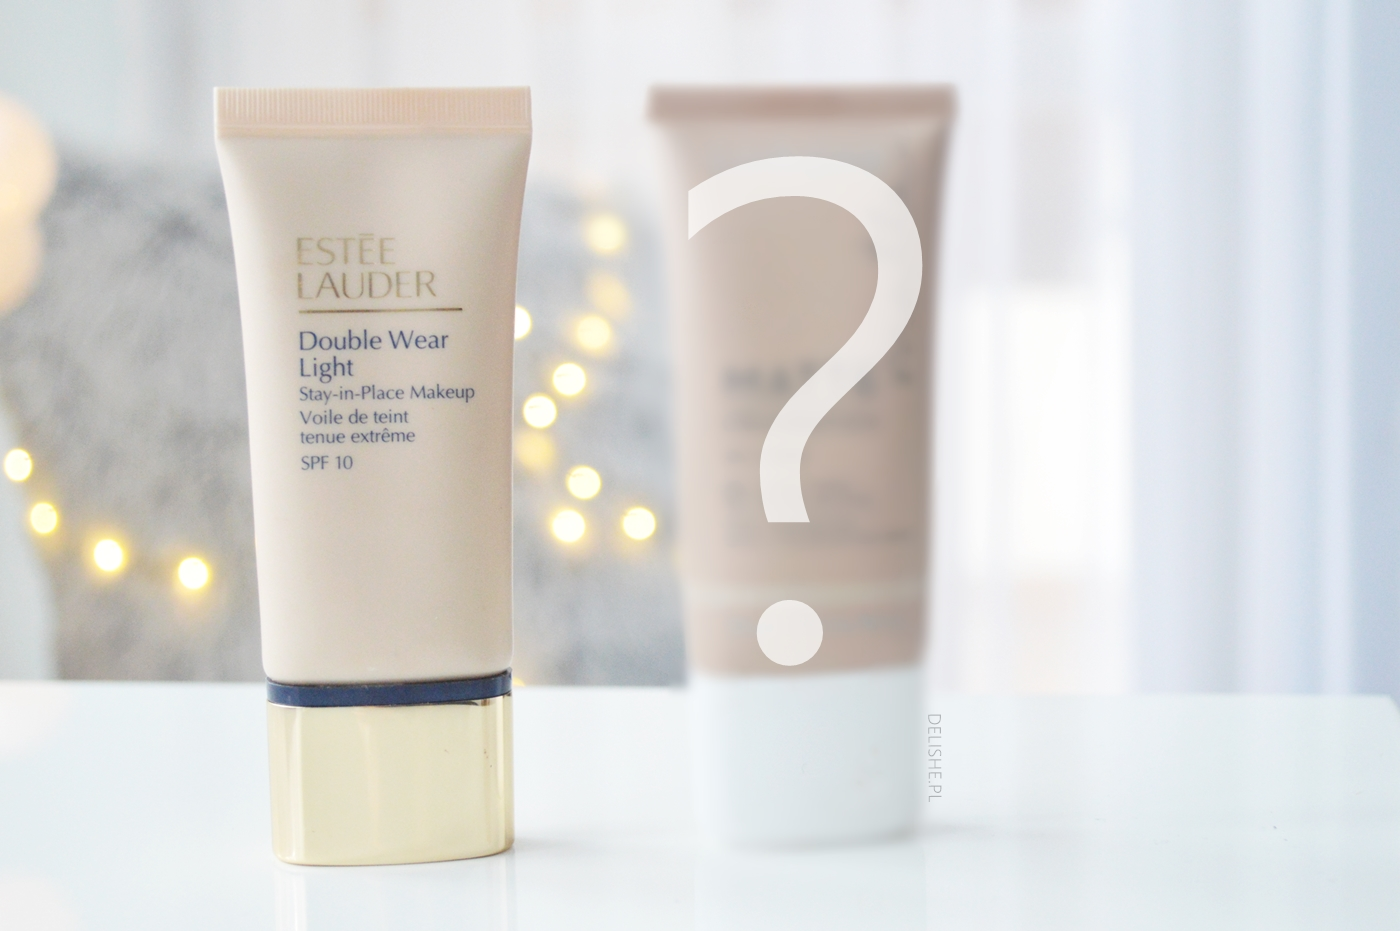 estee lauder double wear light zamiennik